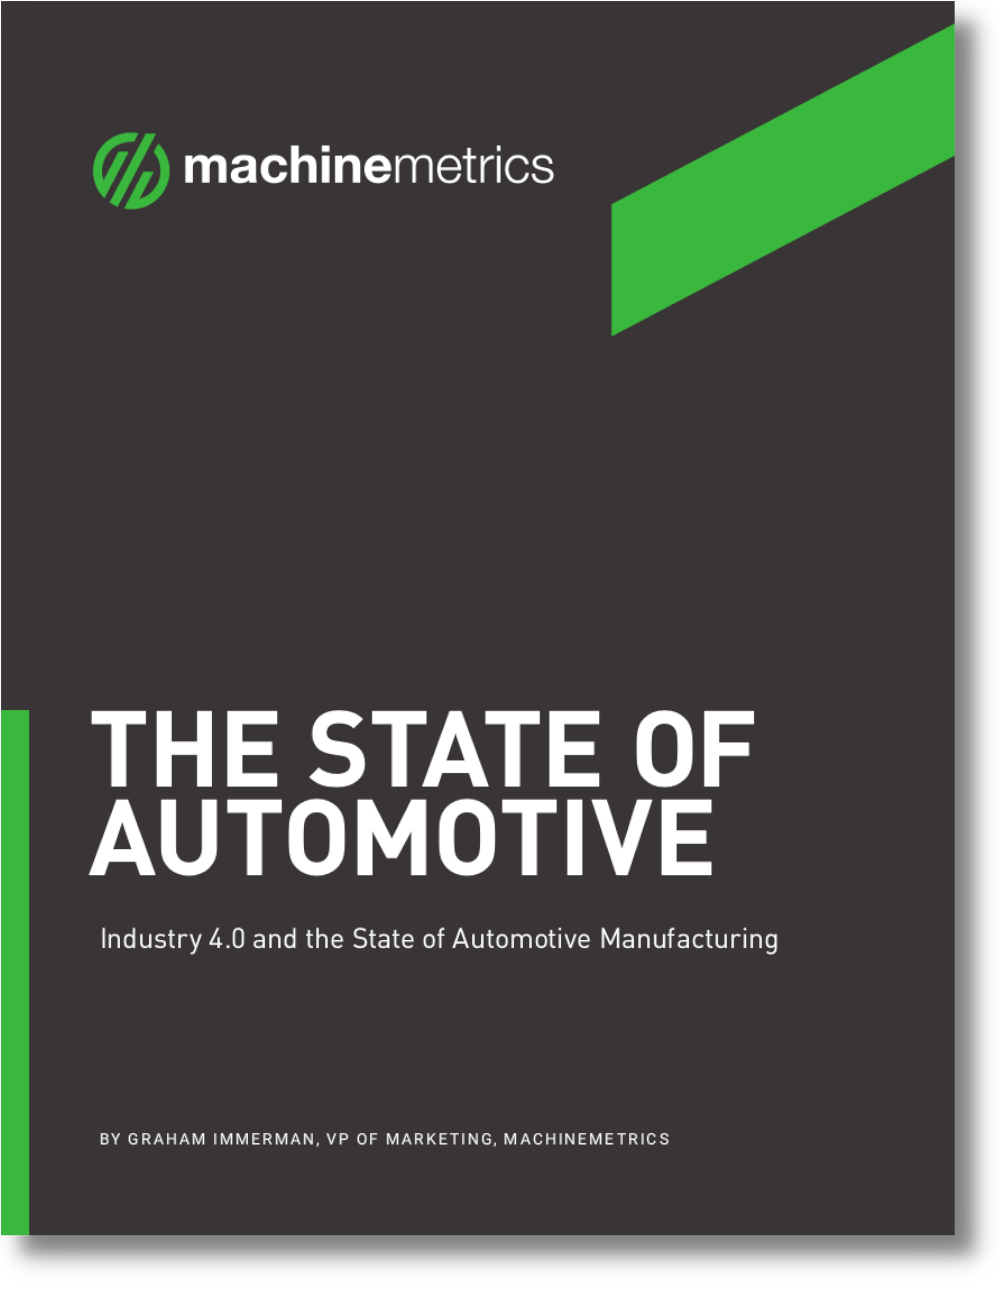 Industry 4.0 and the State of Automotive eBook